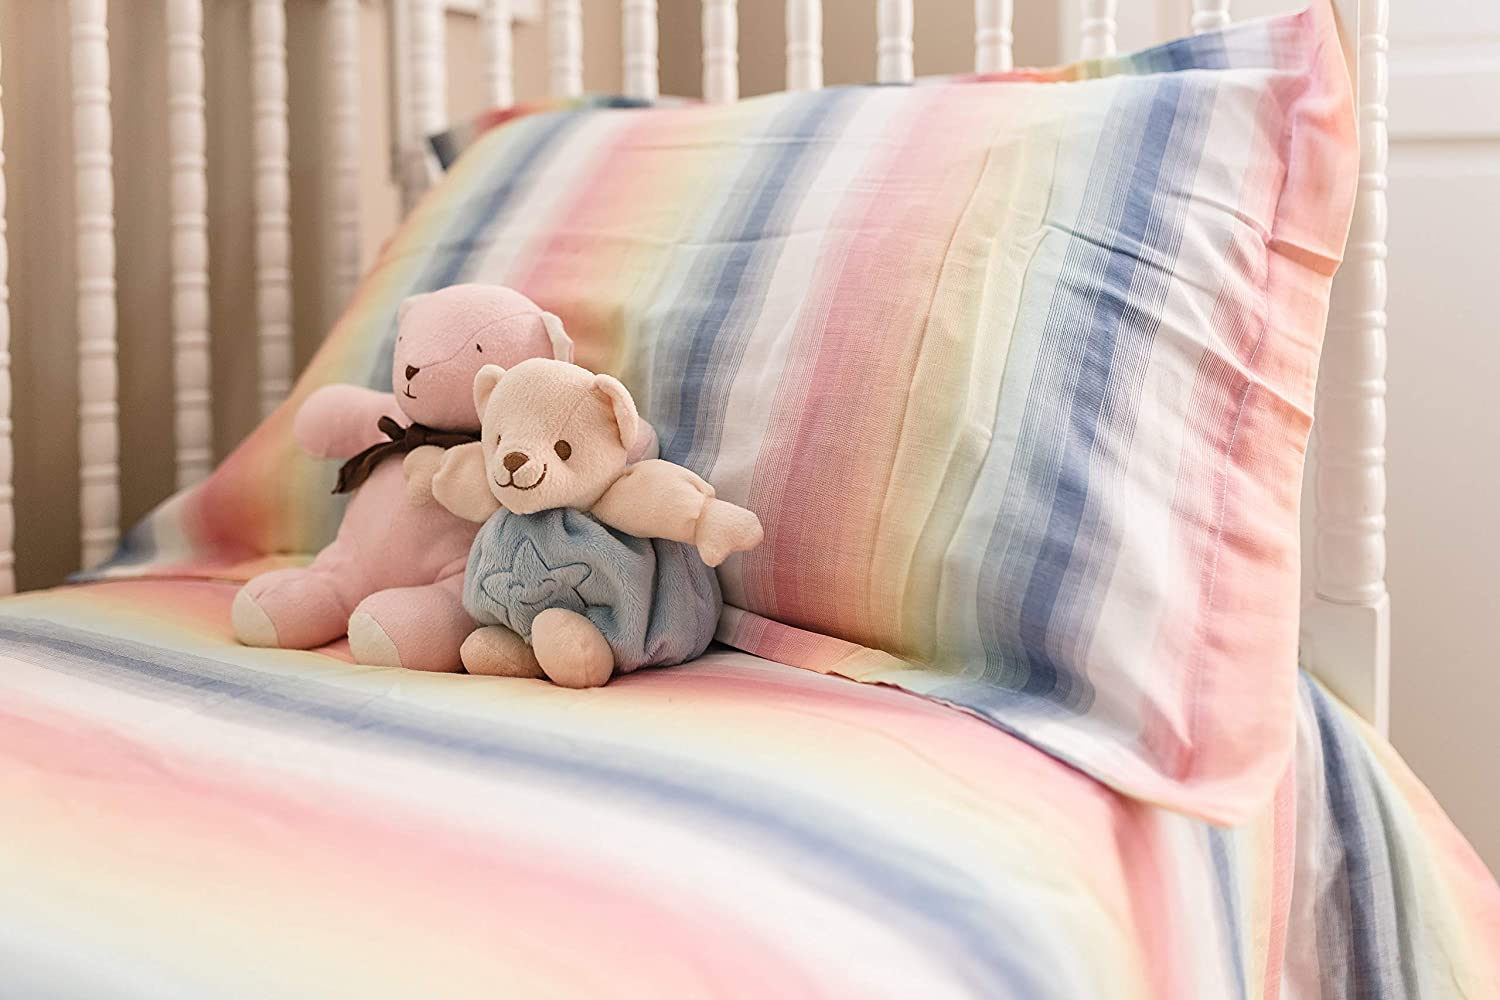 Navy 3 Piece Crib Bedding Set Premium-Quality Bedding Set for Baby Crib Dusty Rose and Cream Stripe 100/% Cotton Henry and Bros Super Soft